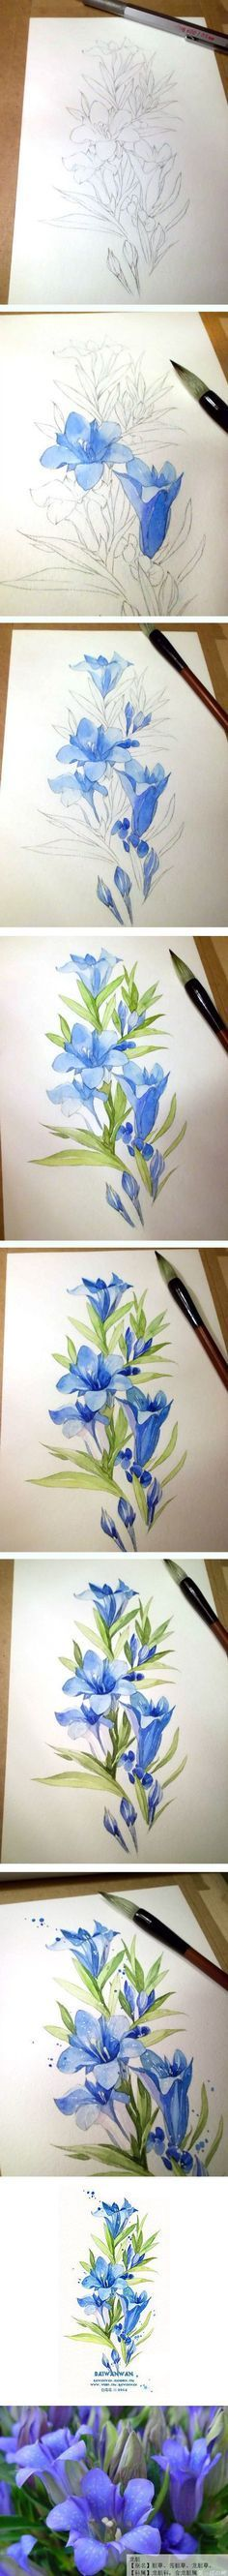 20 Delicate Colorful Watercolor Flower Painting Tutorials In Images-HOMESTHETICS (1)